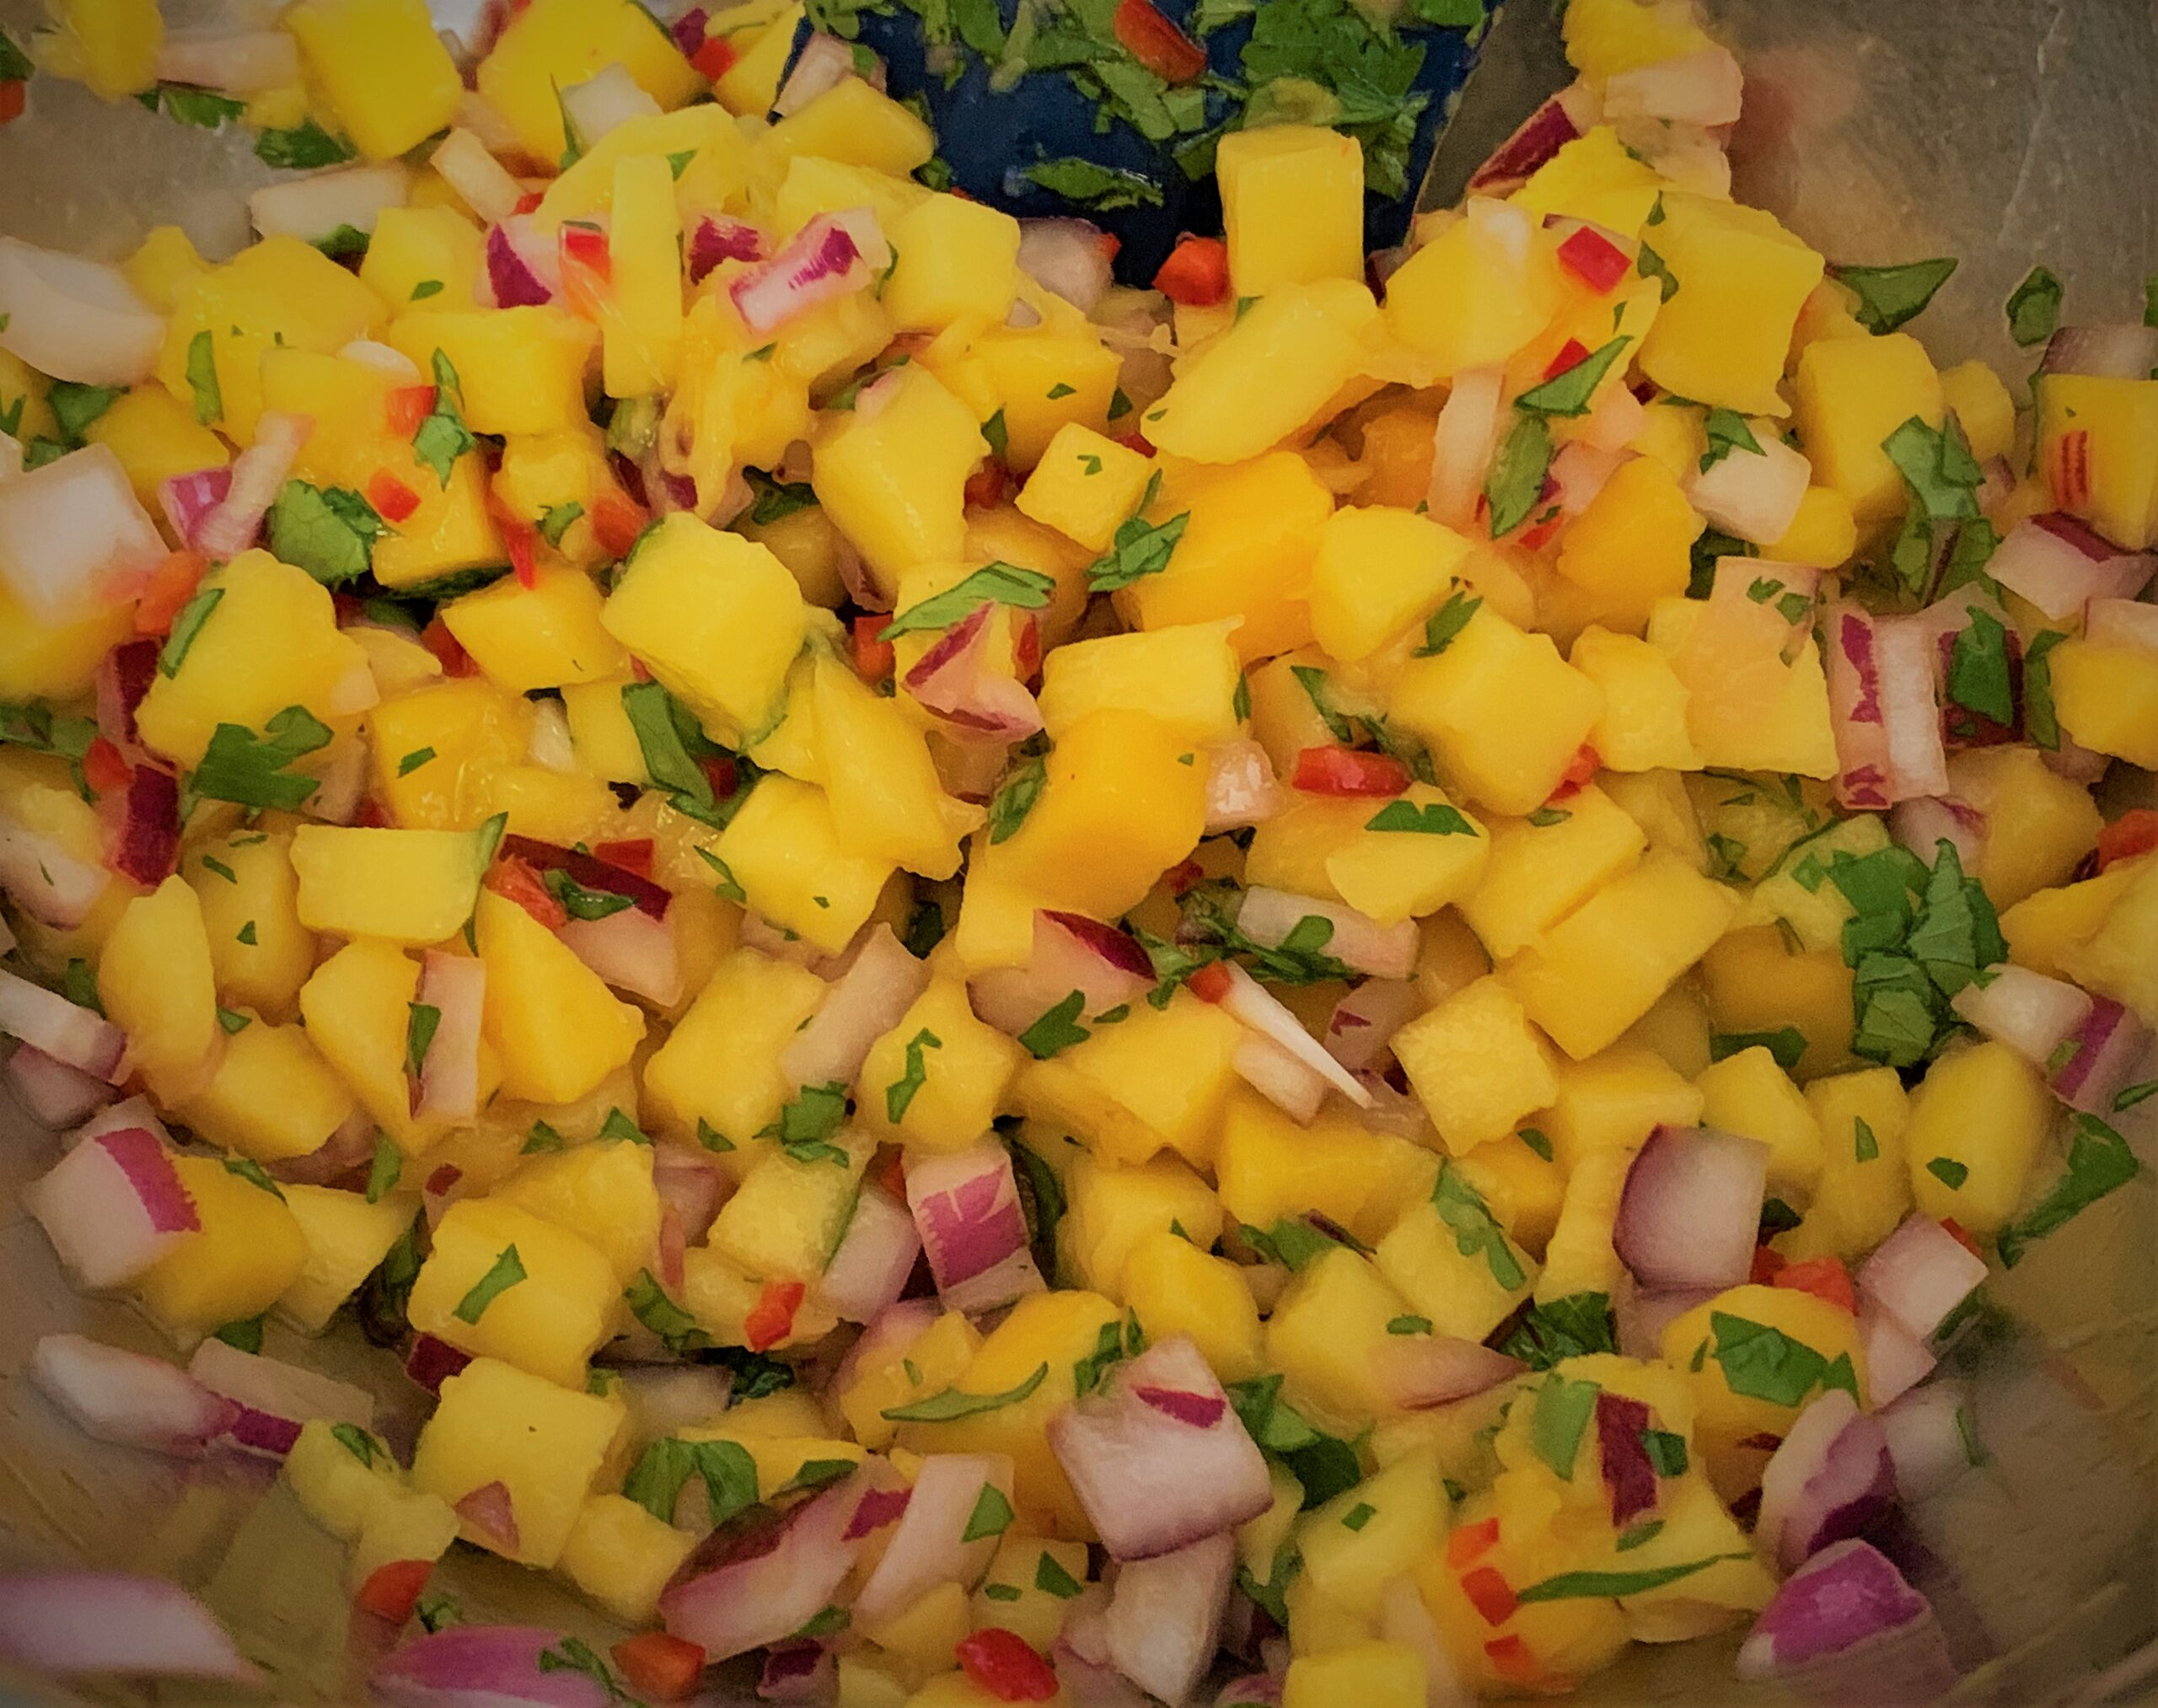 Our combined Mango Salsa for our Kalua-Style Pulled Pork Tots with Polynesian BBQ Sauce & Mango Salsa